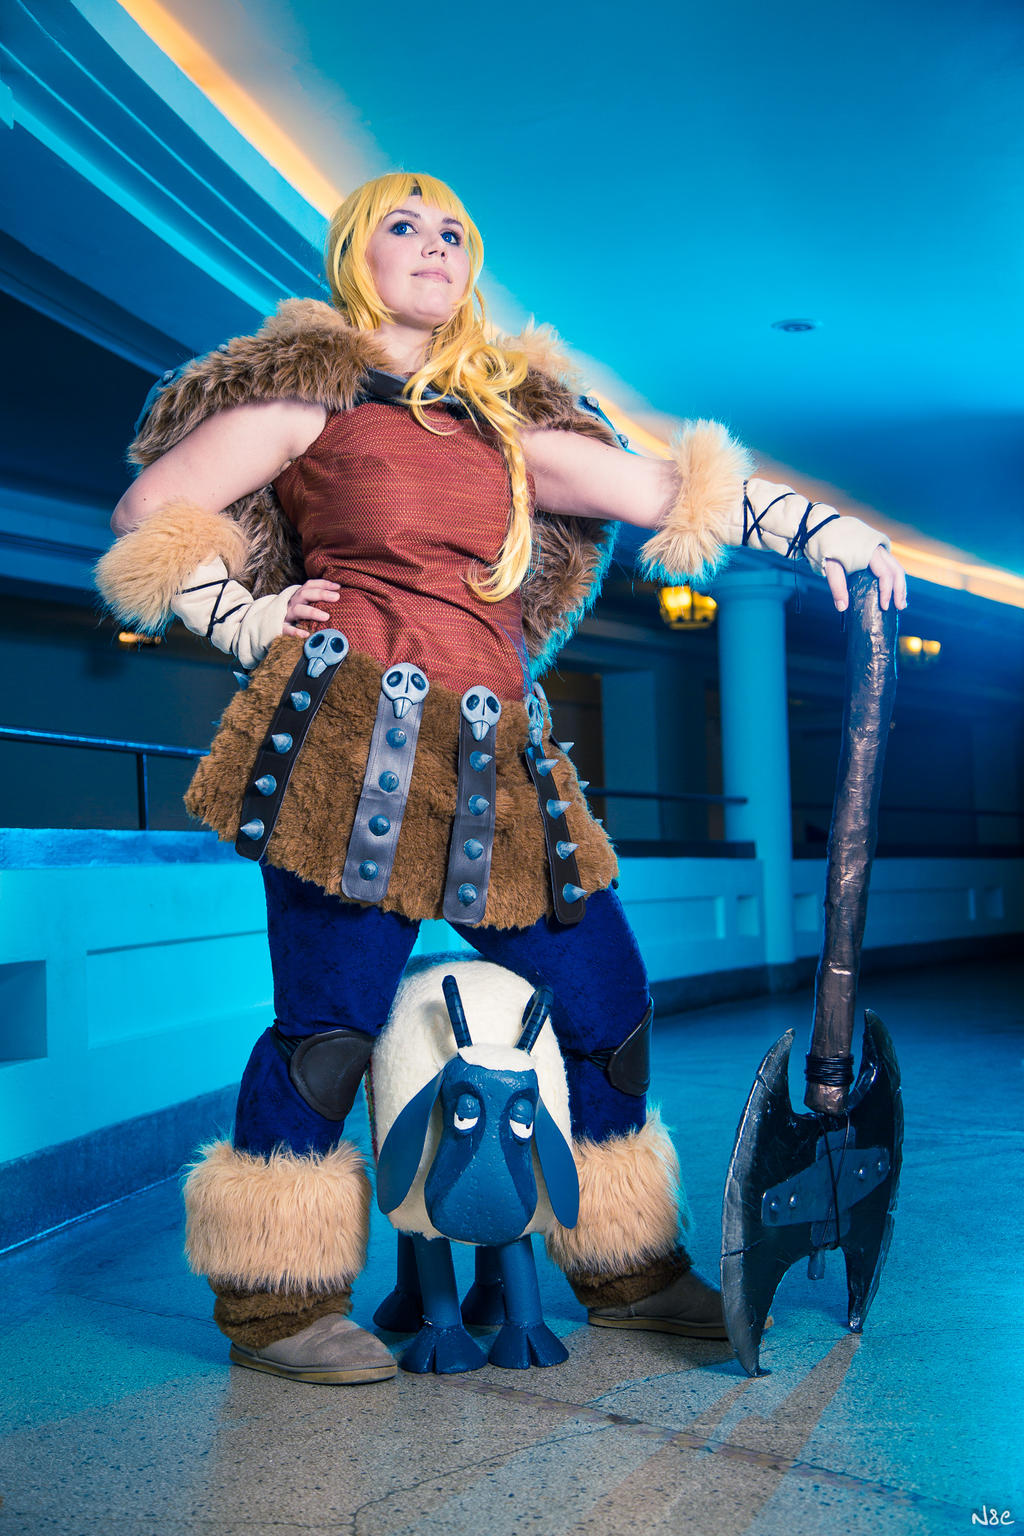 Astrid from How to train your dragon 2 cosplay by PeytonCosplay